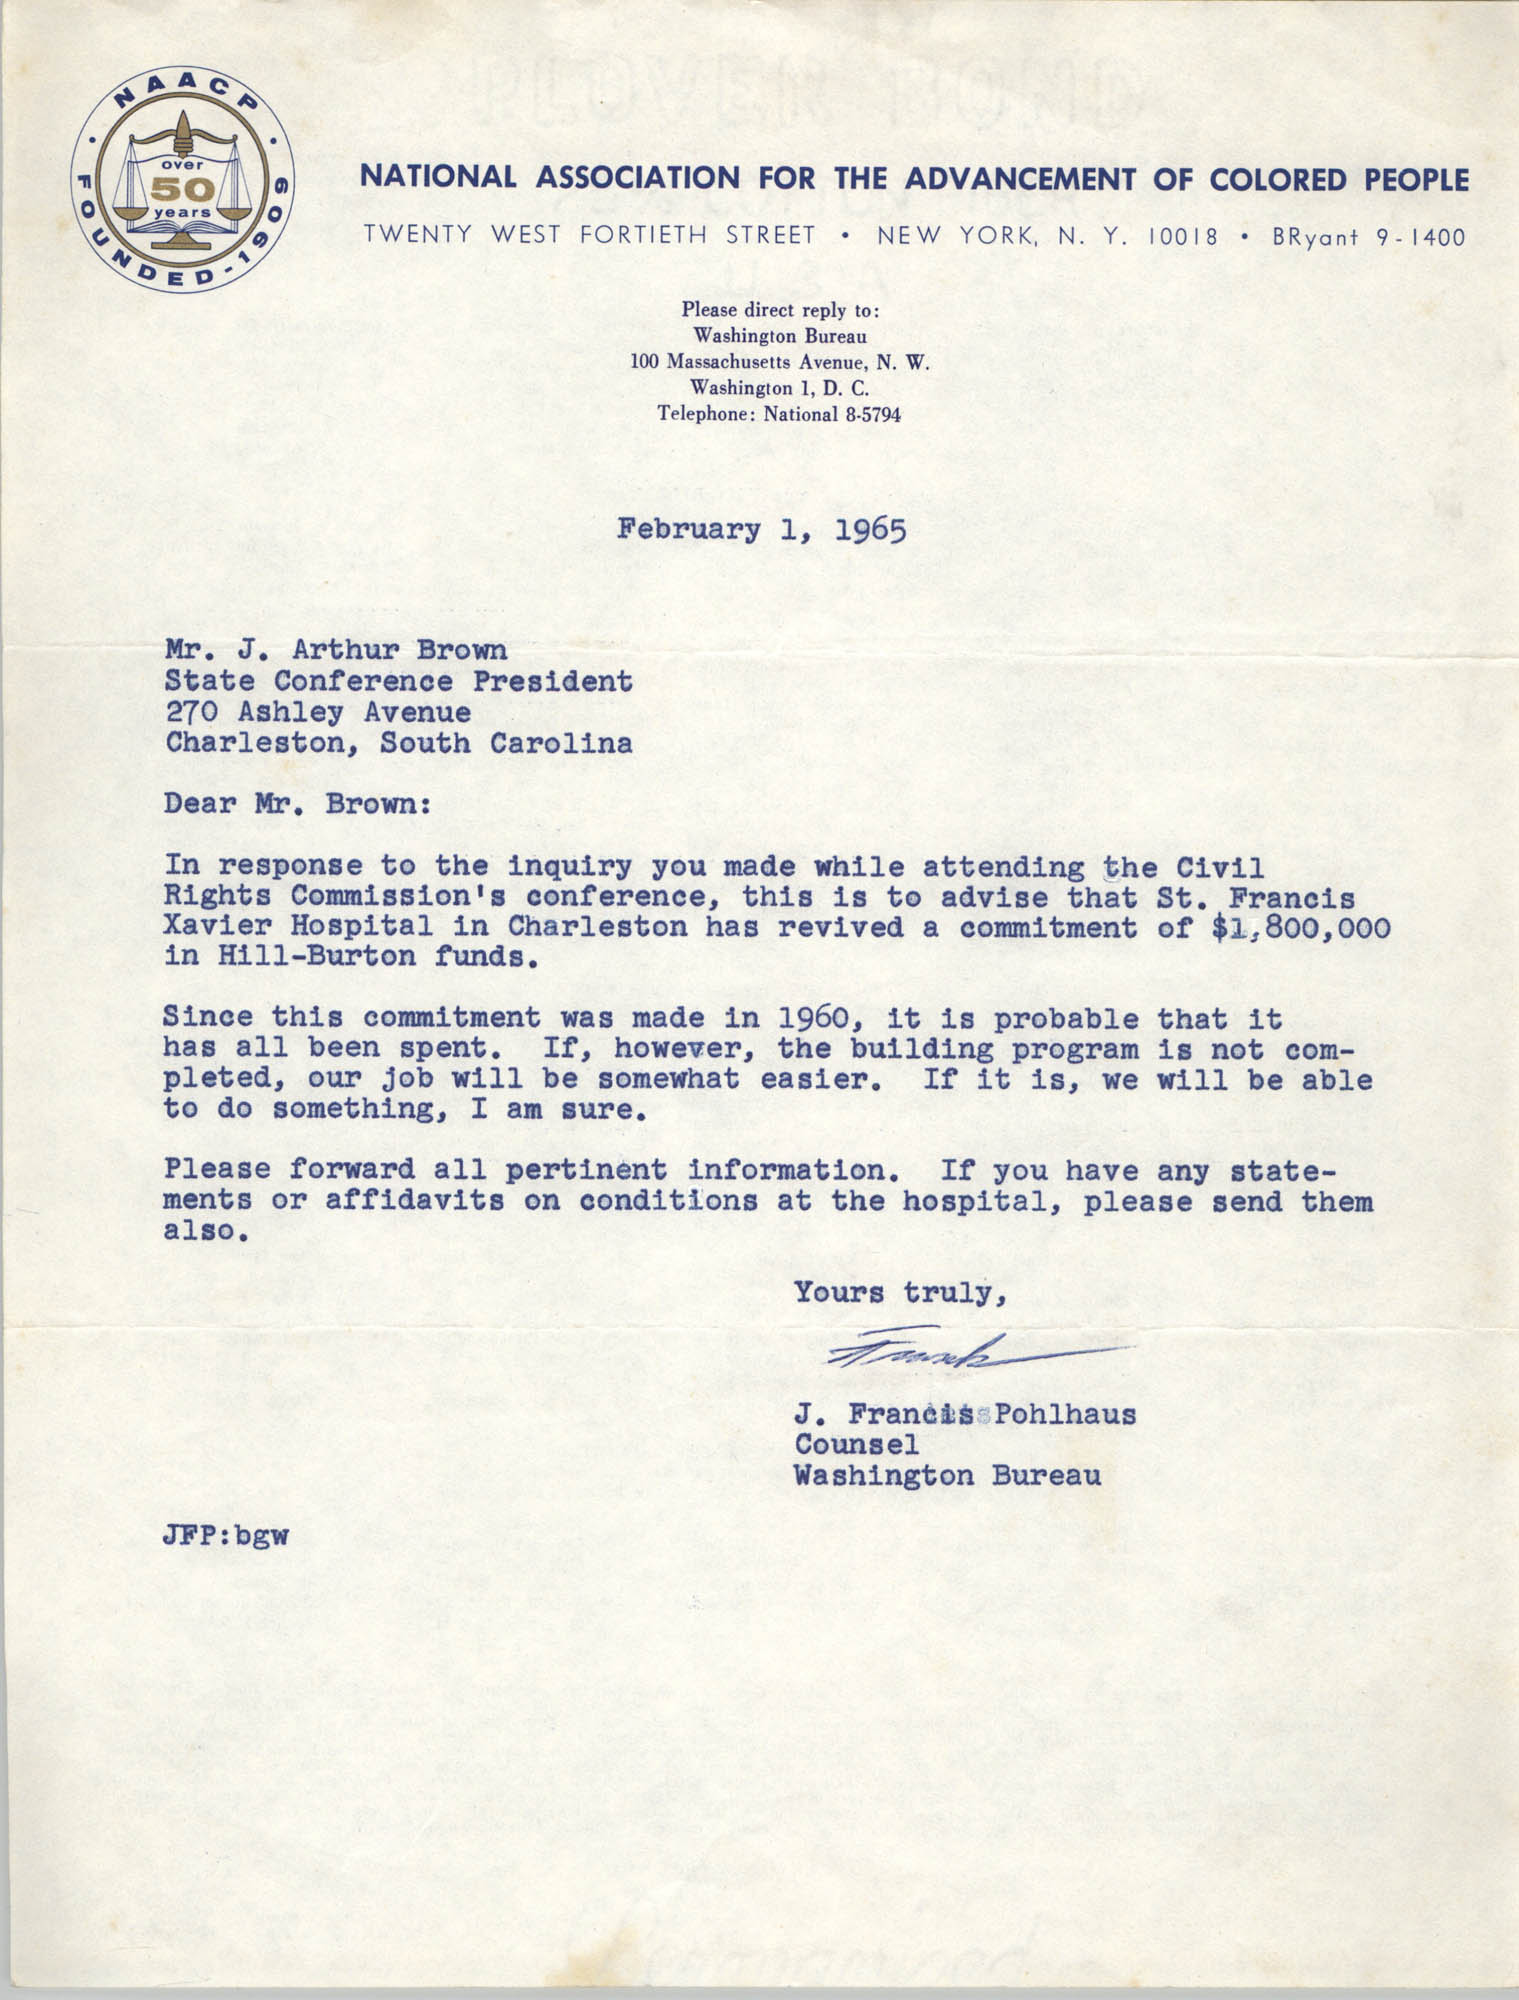 NAACP Memorandum, February 1, 1965